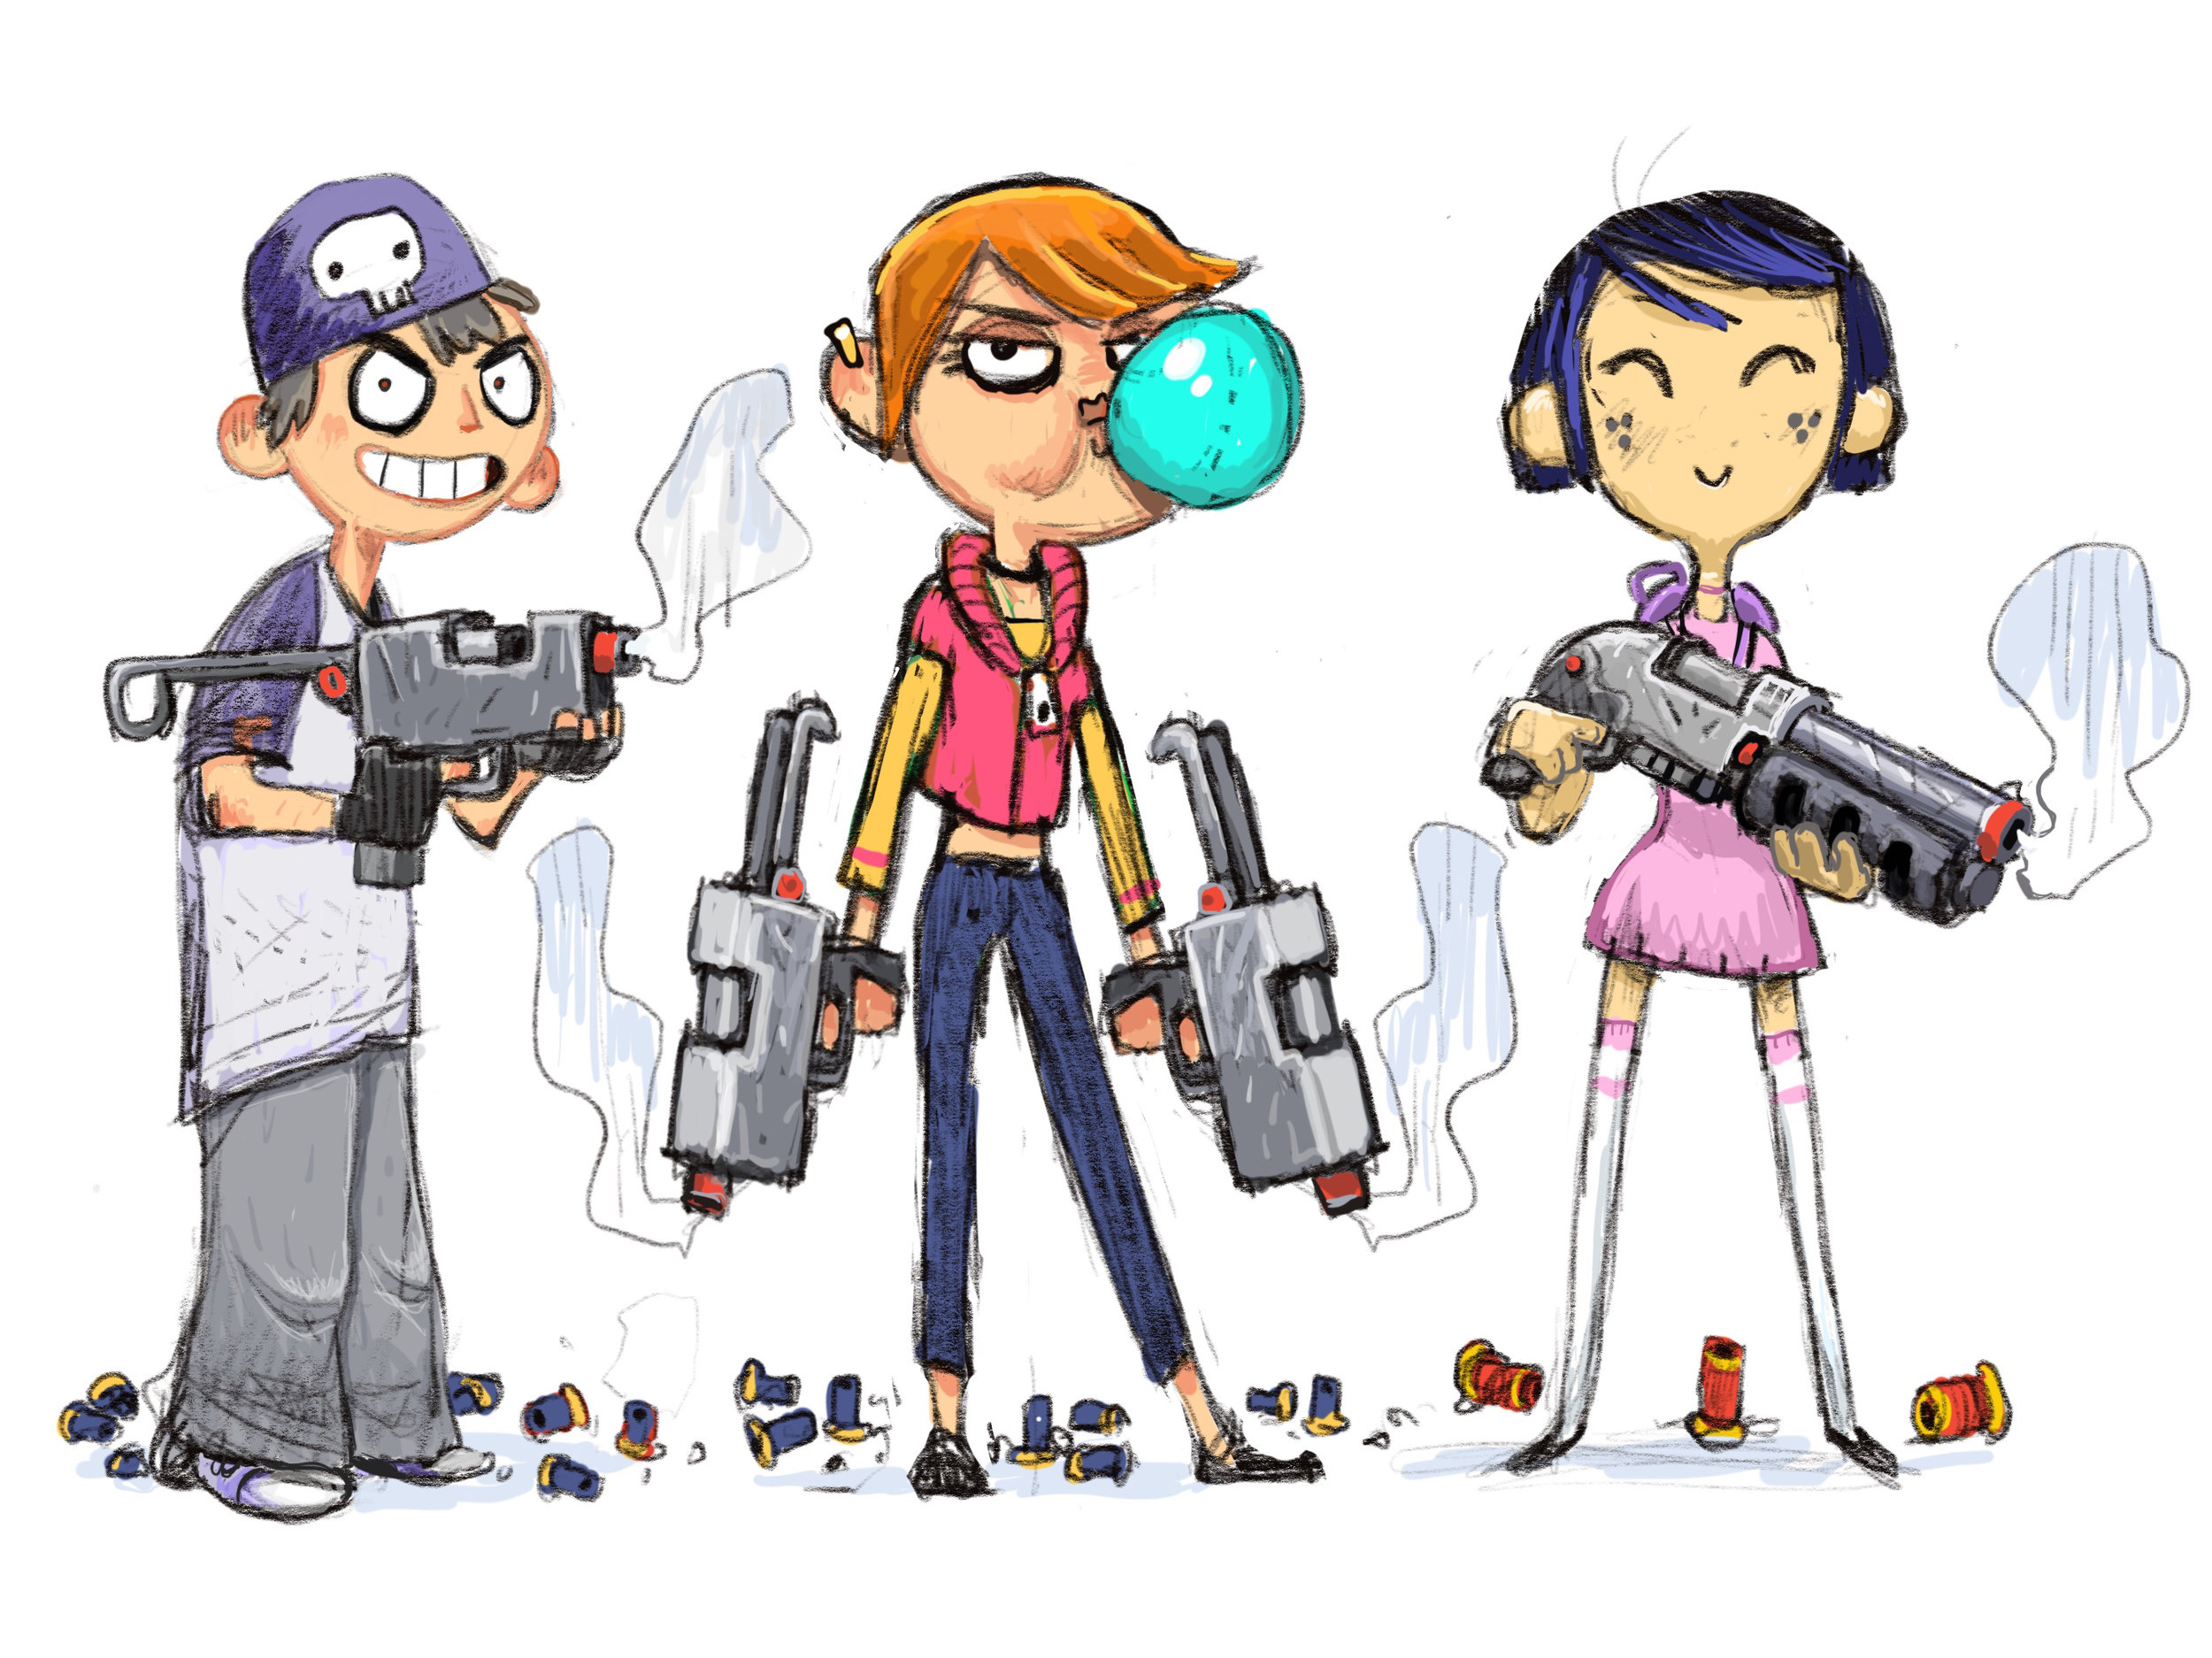 First iteration of the game's character designs.